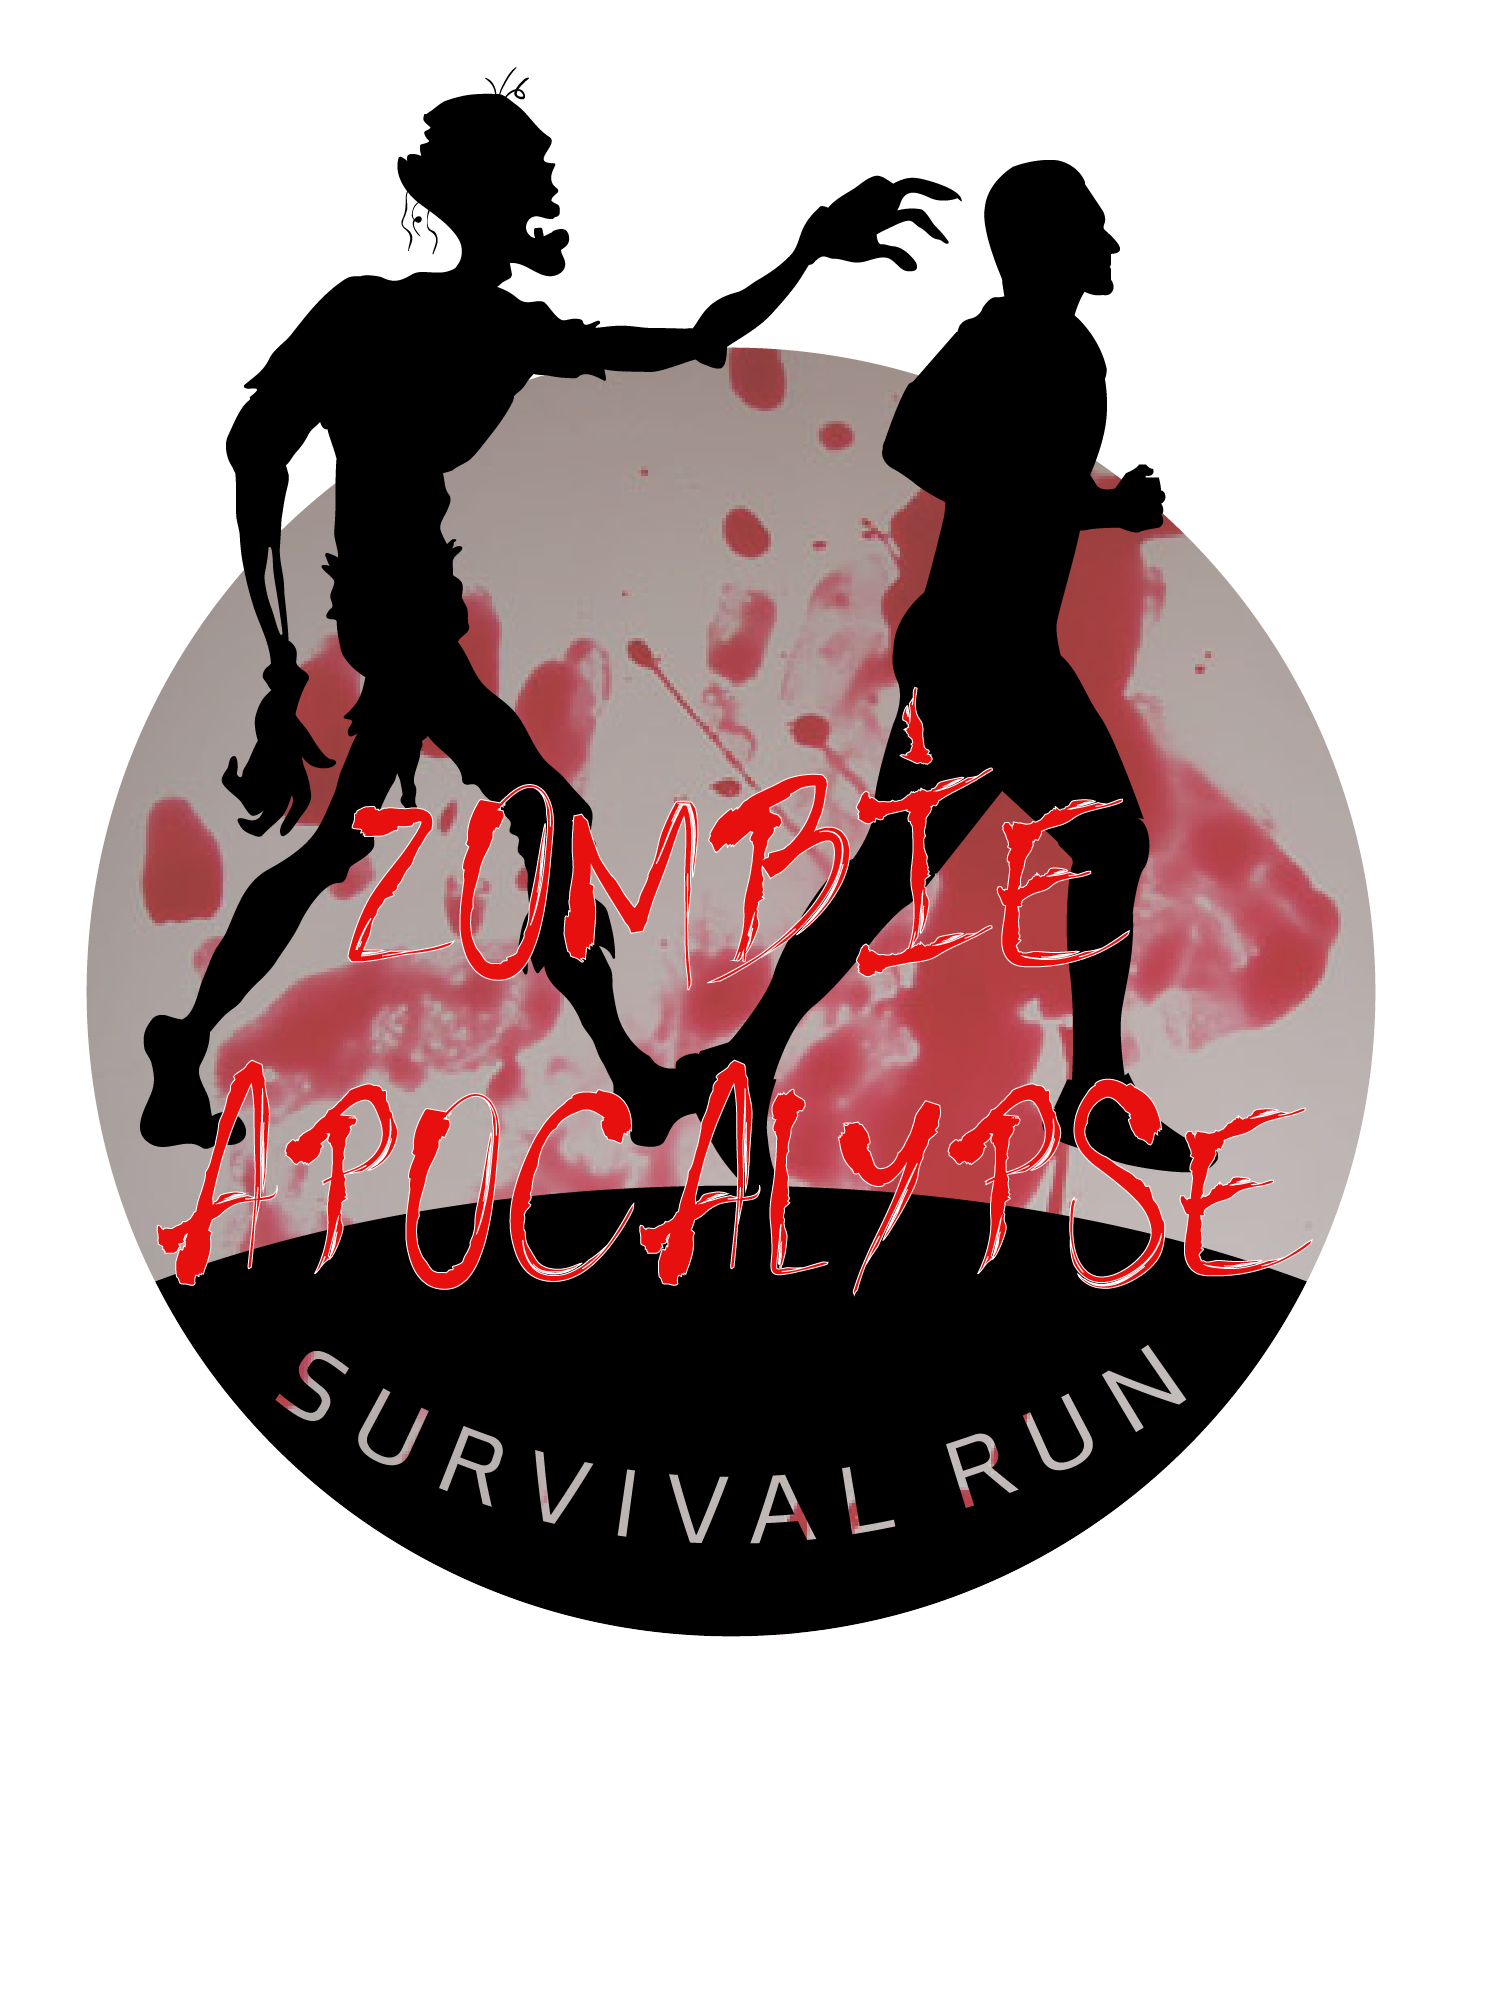 Zombie Apocalypse Survival Run - 6/2/19